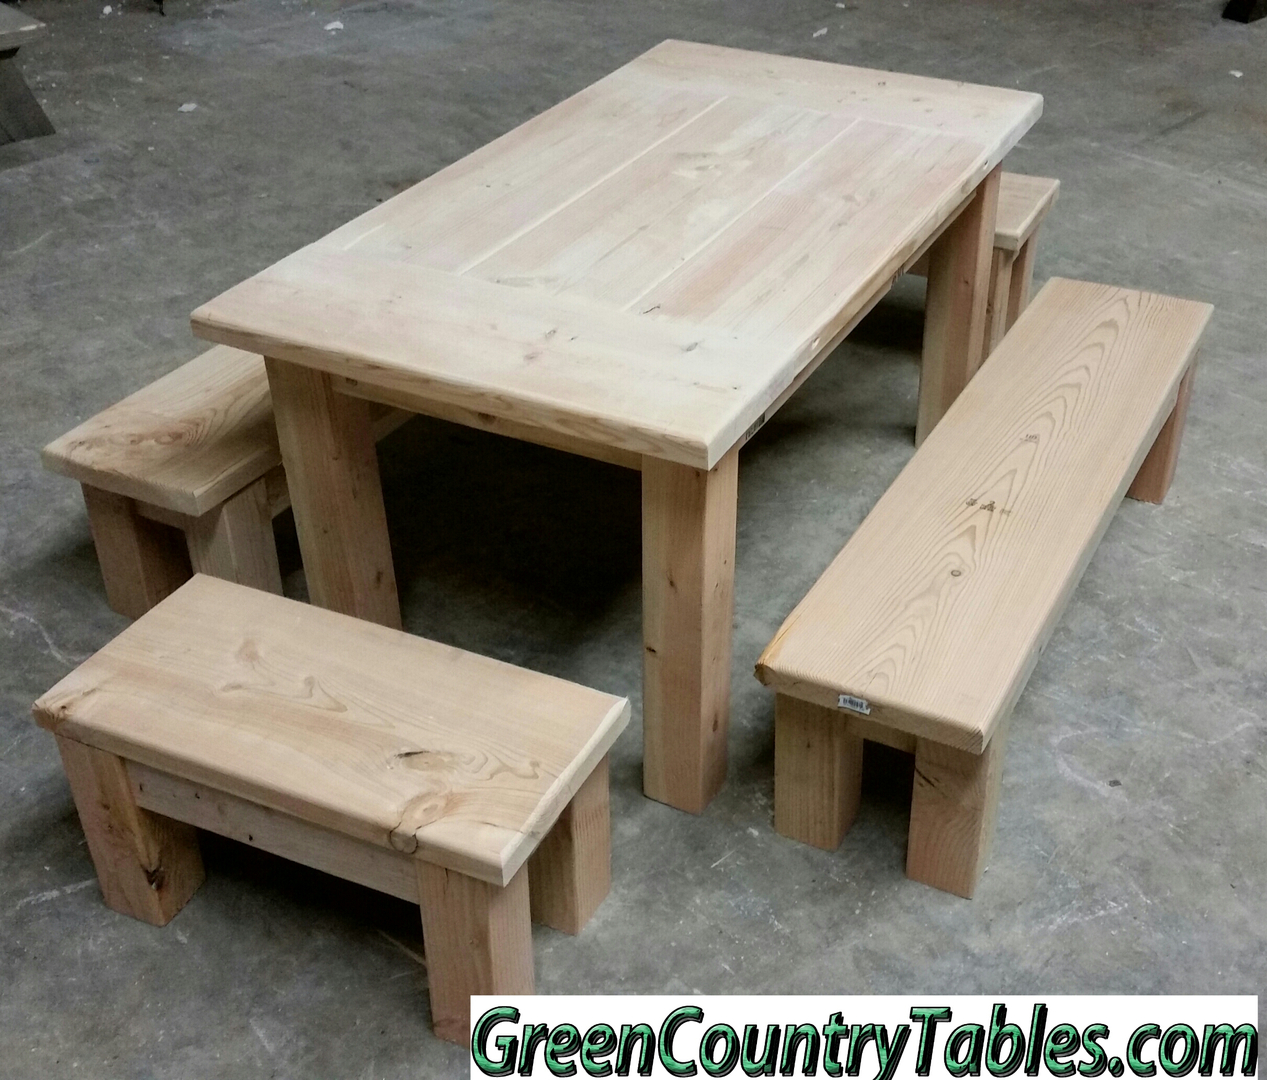 concepts home overstock creek product shipping unfinished parawood farmhouse garden today bench laurel dining hayes free international solid